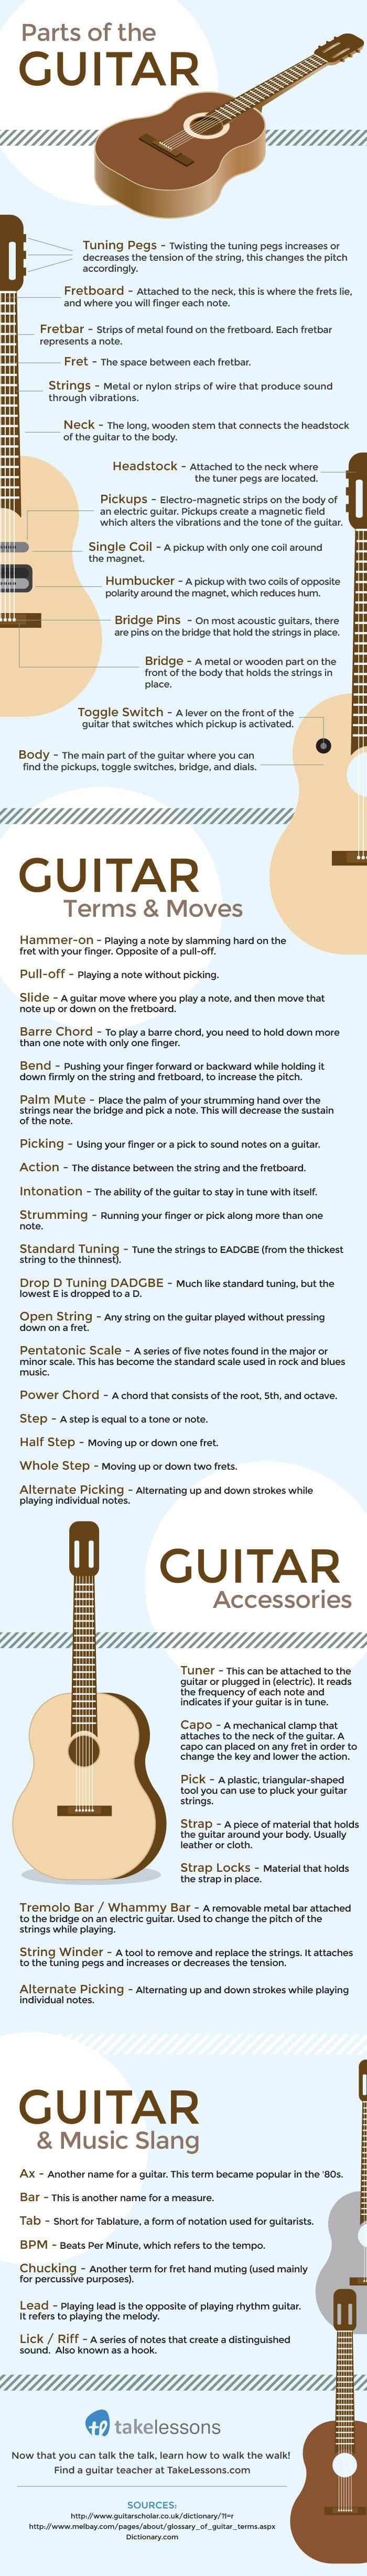 the ultimate beginner s guide to guitar terms infographic dream a little dream guitar. Black Bedroom Furniture Sets. Home Design Ideas